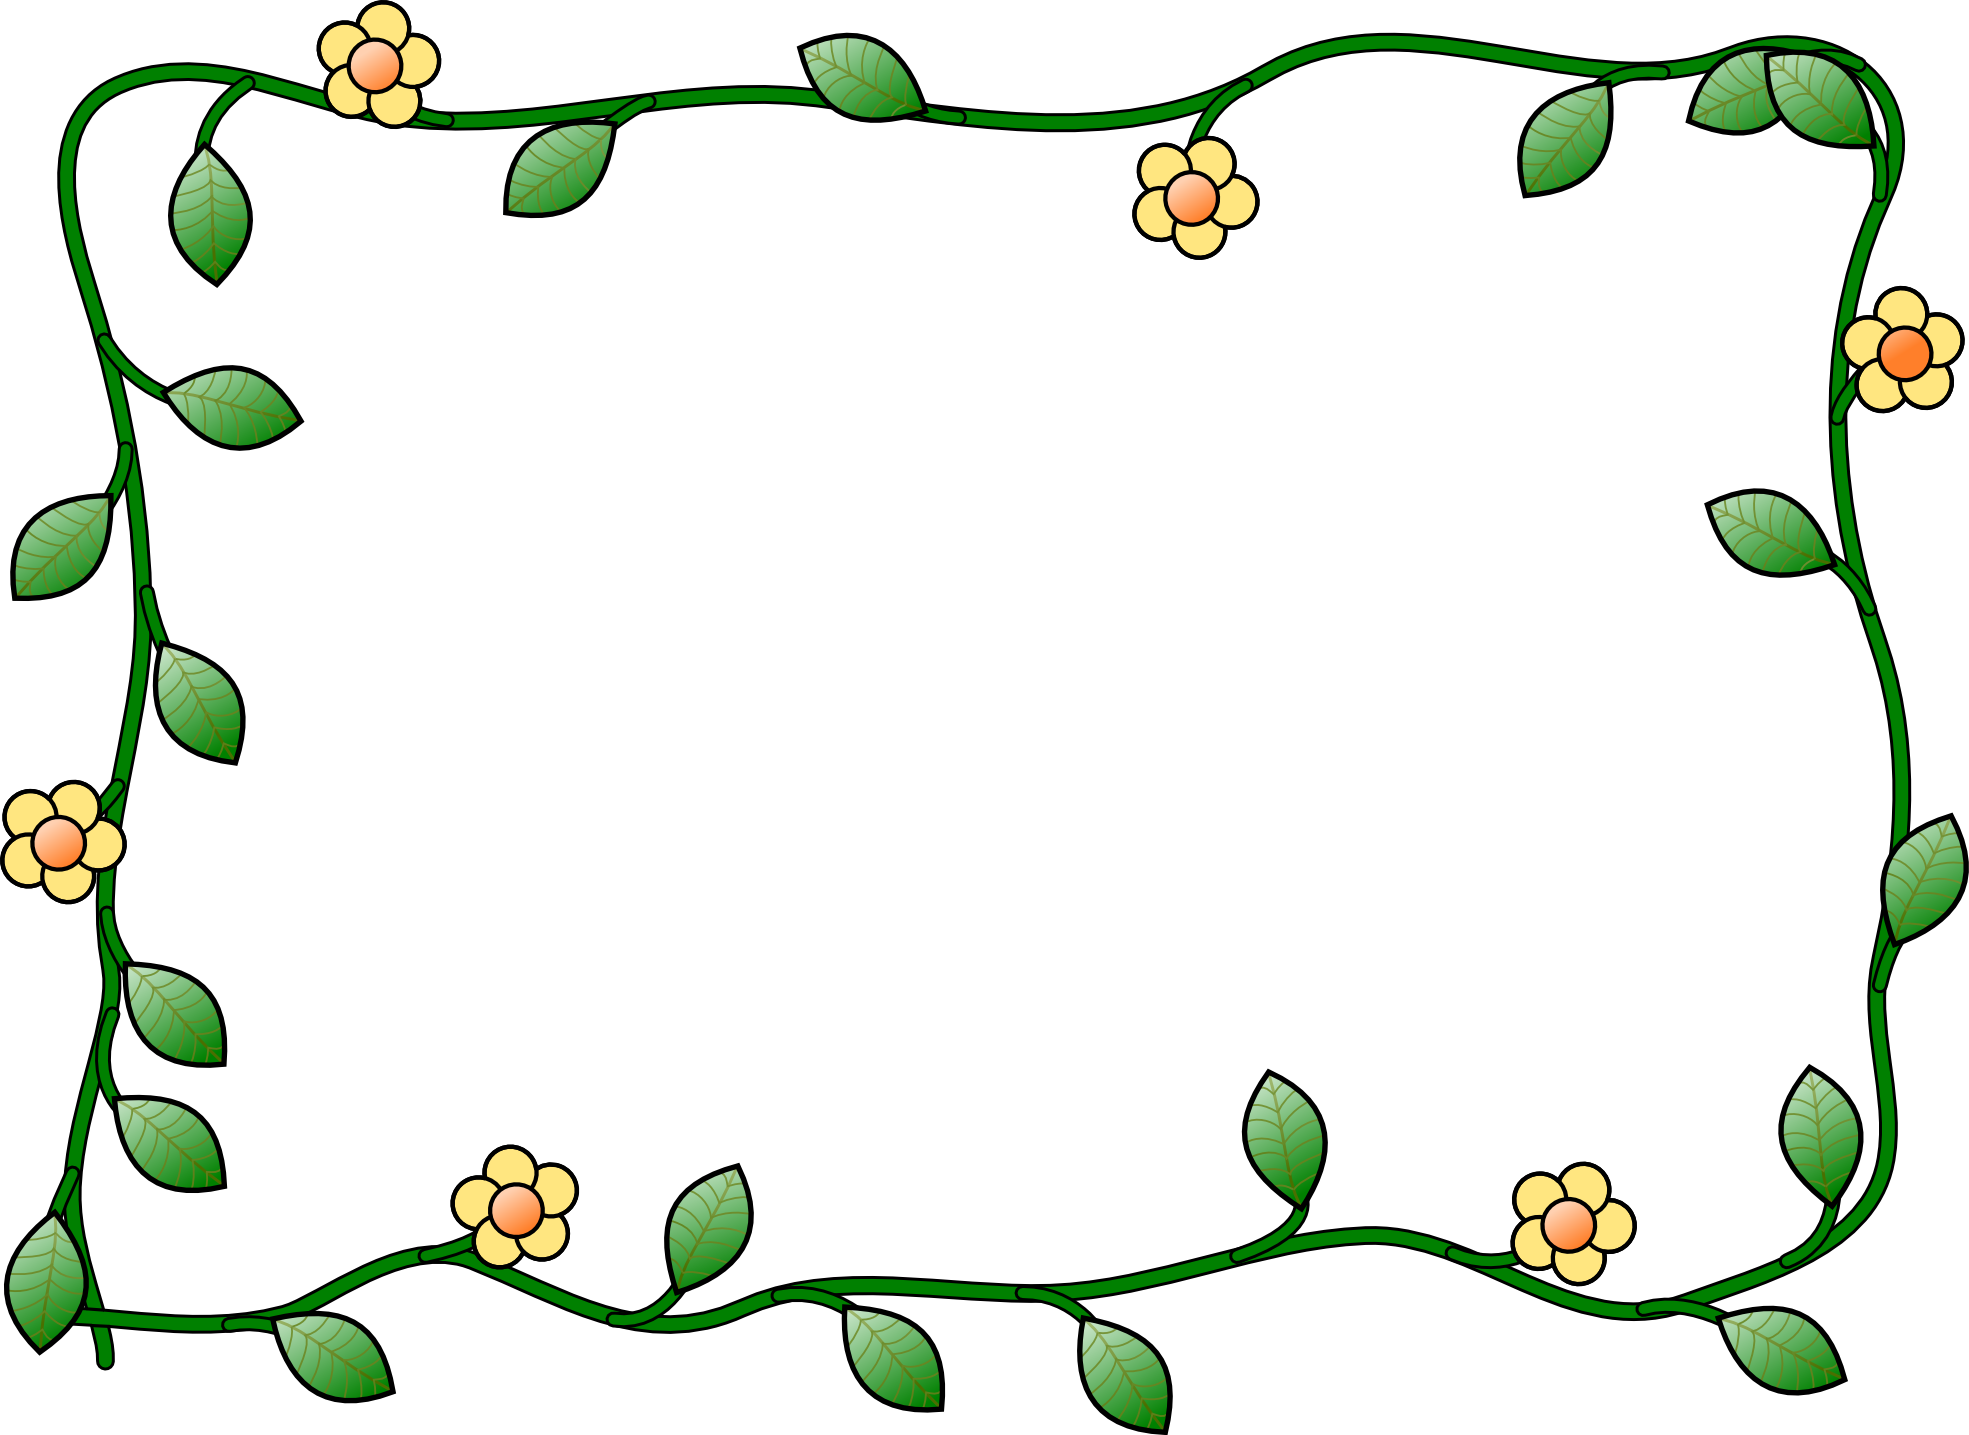 Mothers day cie flower. Daisy clipart frame jpg free